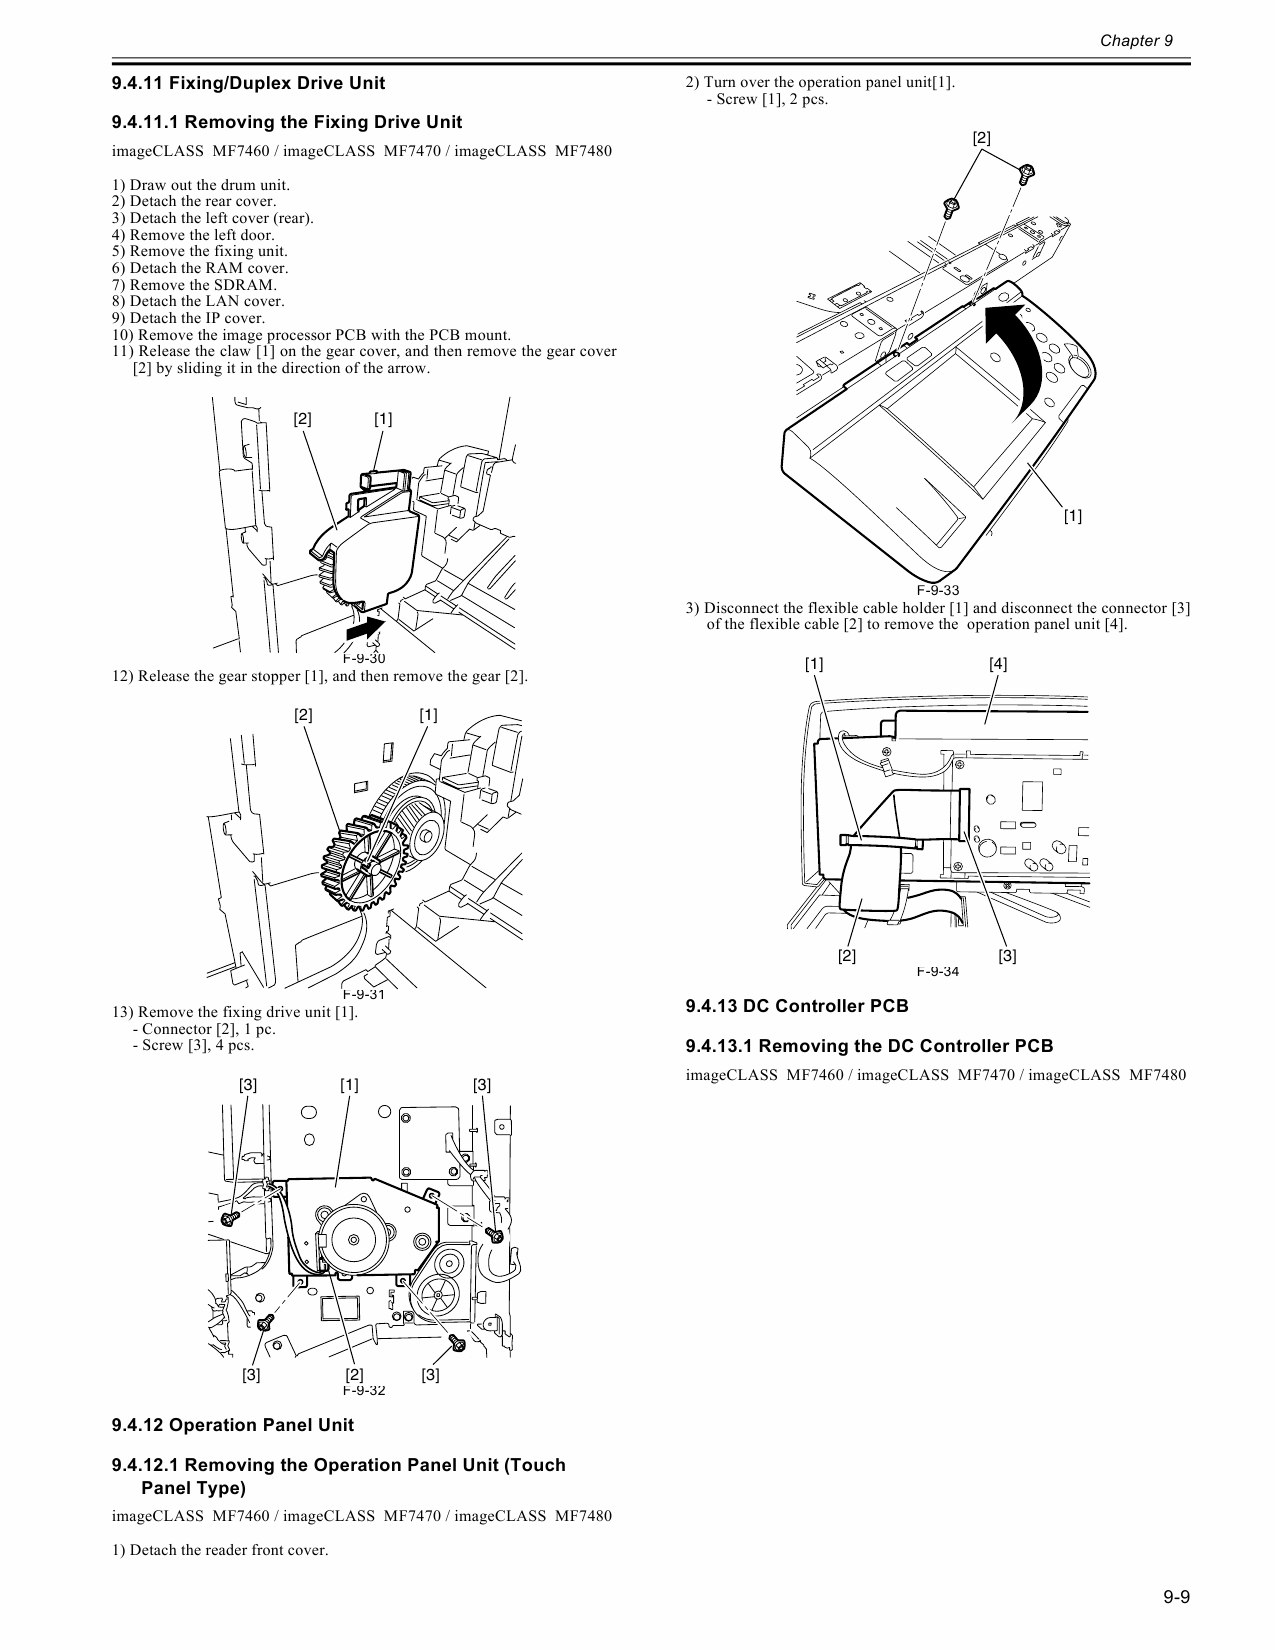 Canon imageCLASS MF-7460 7470 7480 Service and Parts Manual